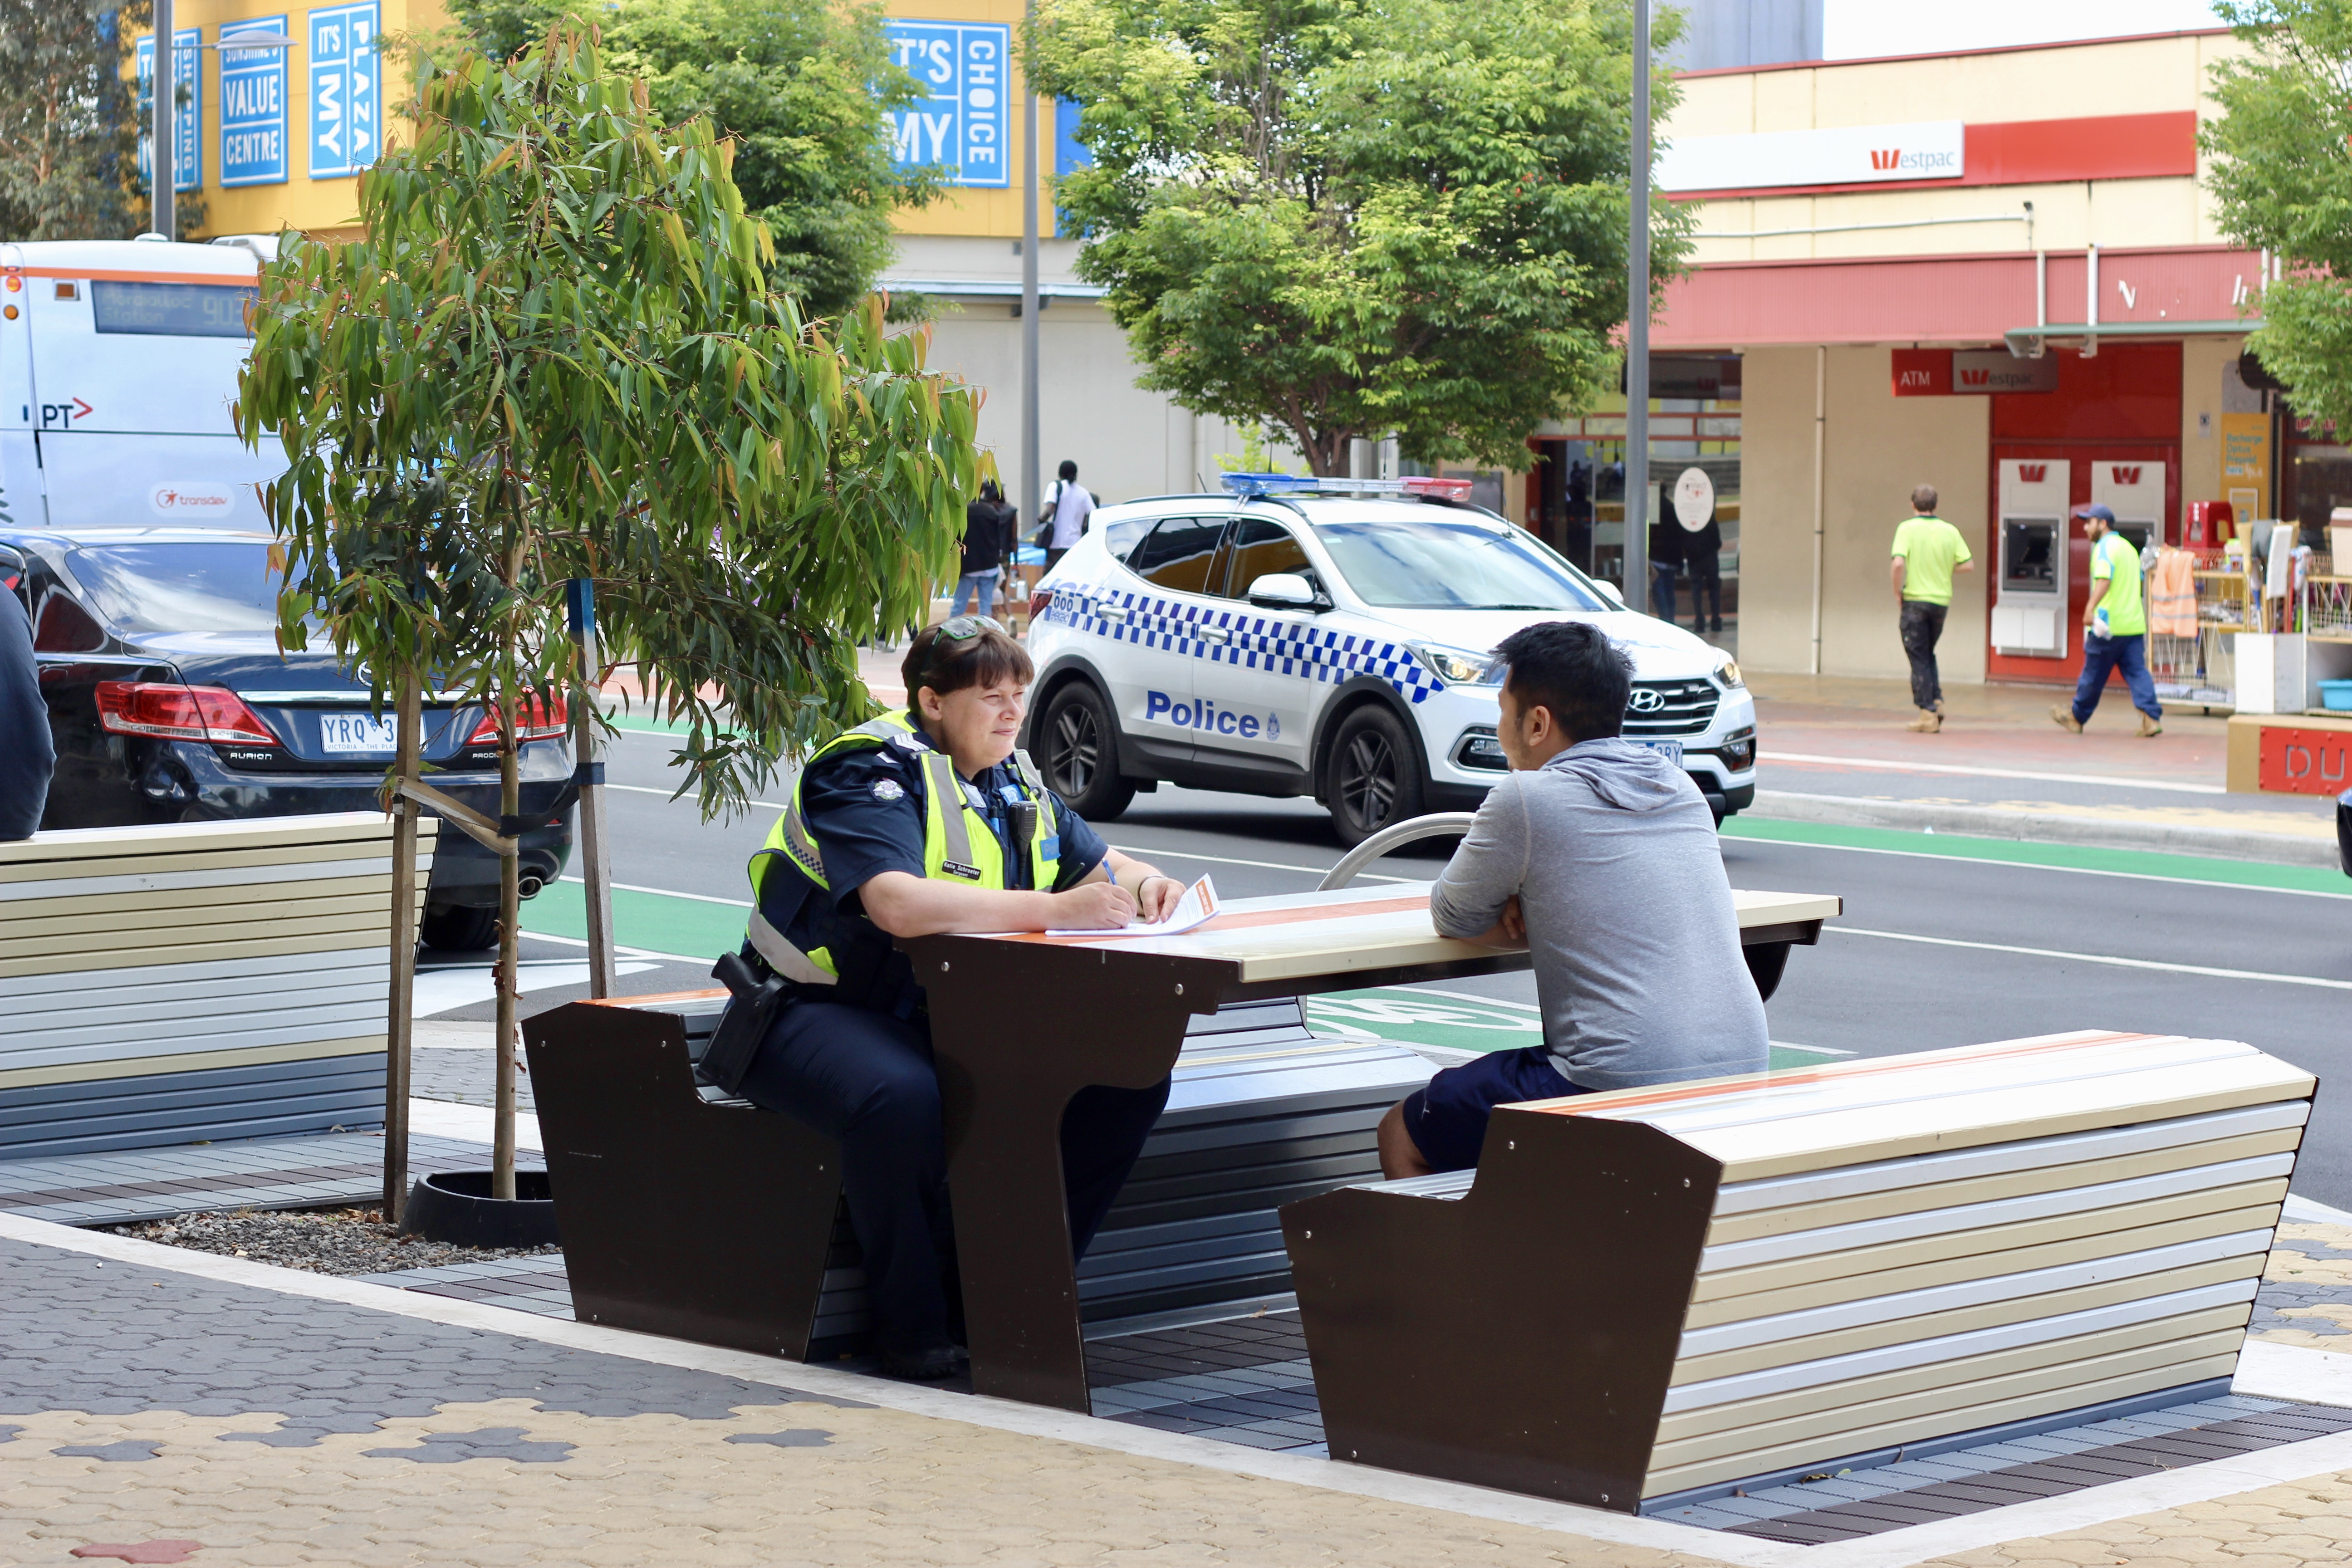 A police officer and a member of the public chat while sitting at an outdoor table.